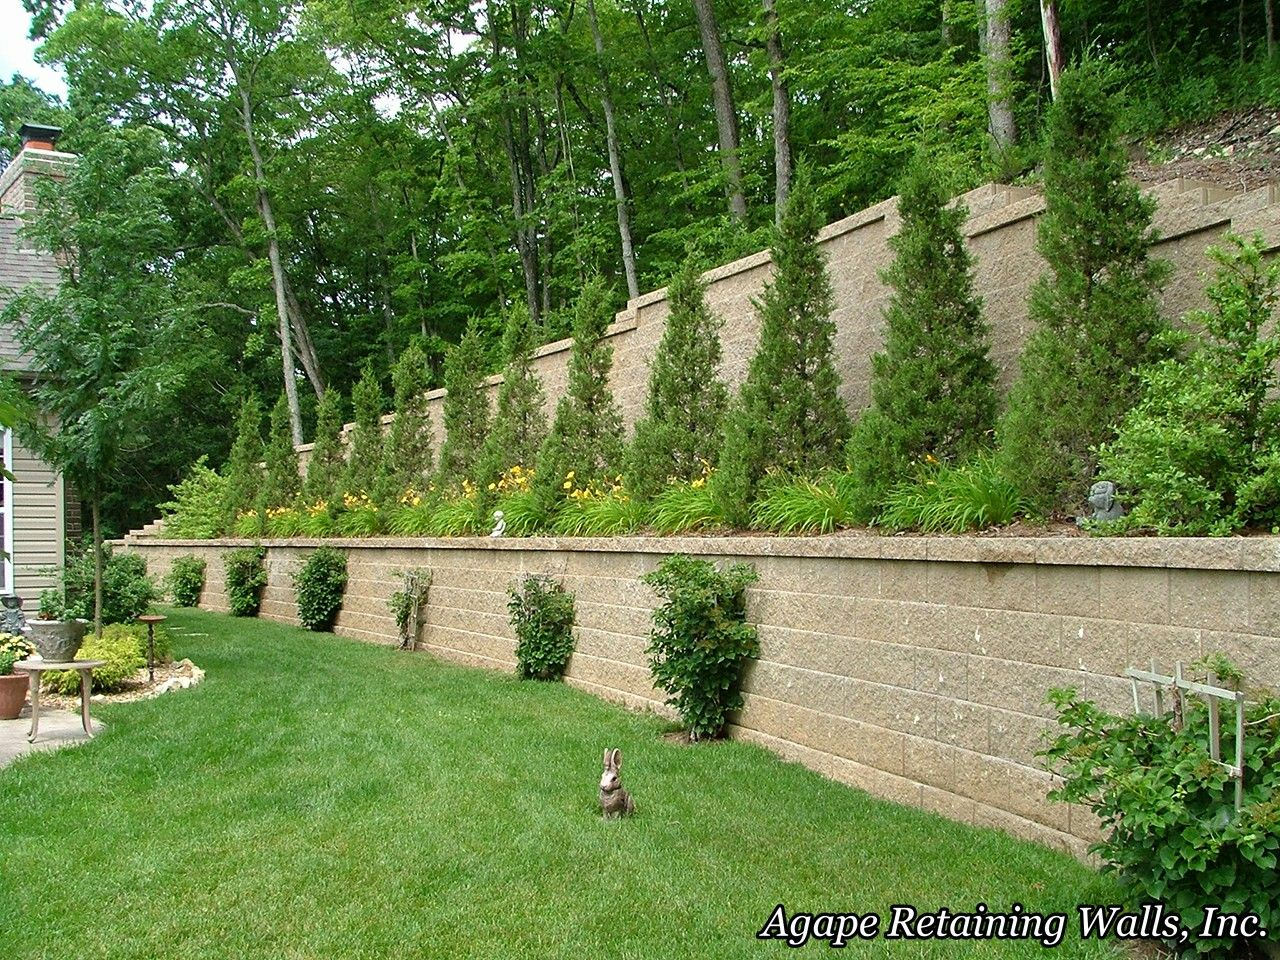 Exactly What We Need For The Steep Hill Landscaping And All Backyard Hill Landscaping Steep Hill Landscaping Hillside Landscaping